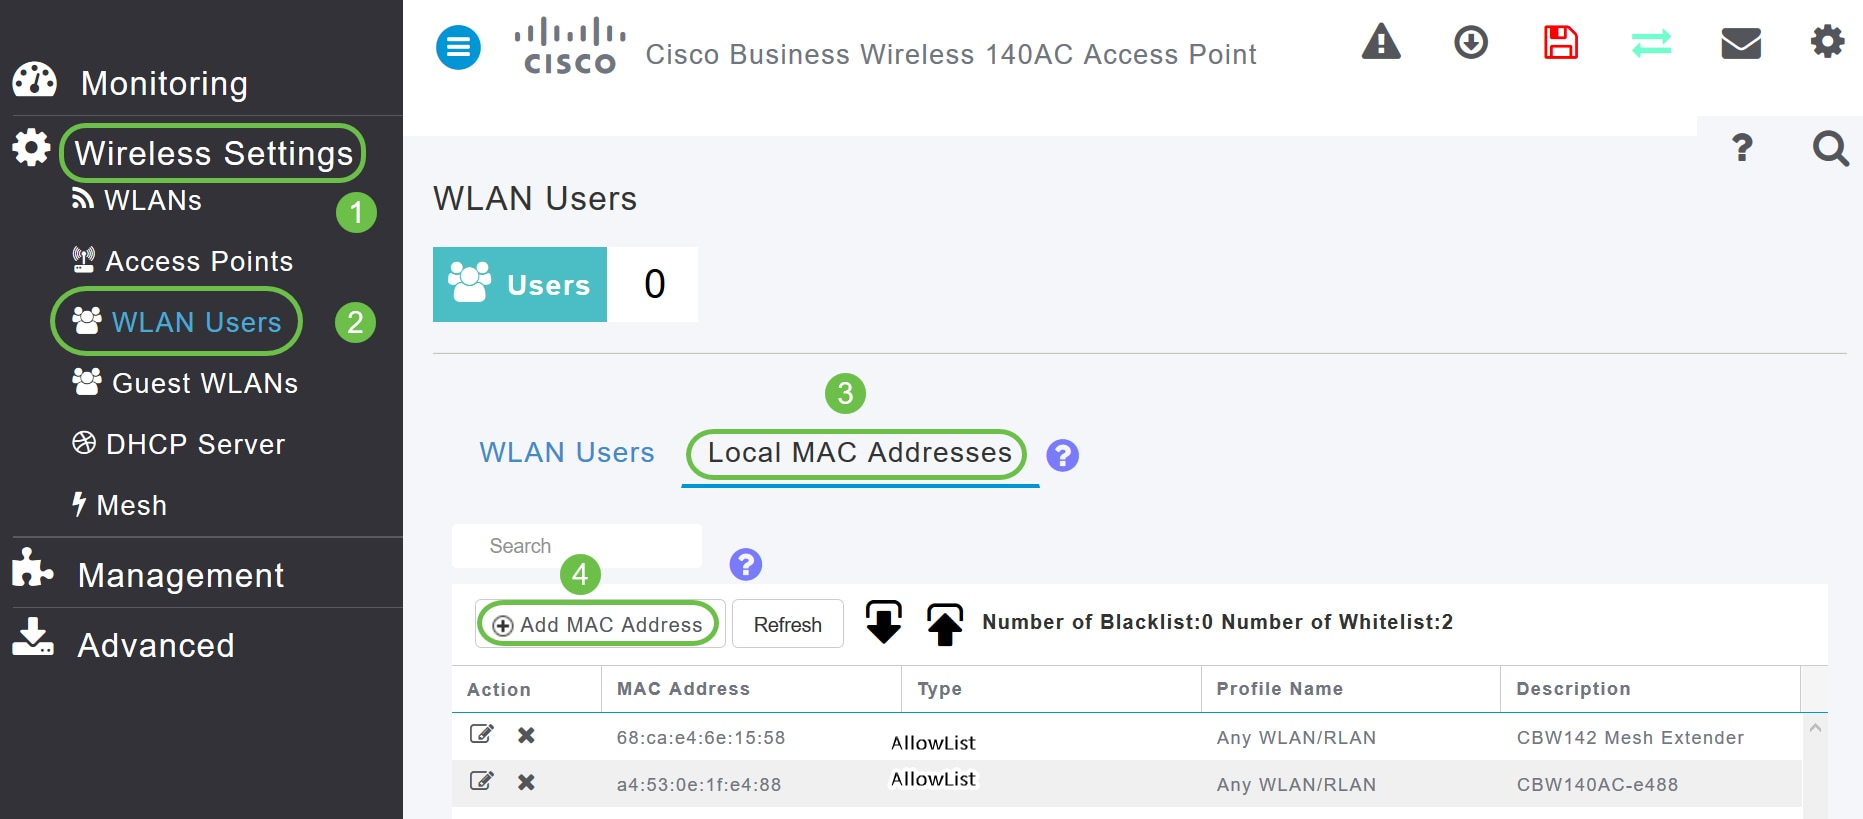 Navigate to Wireless Settings > WLAN Users > Local MAC Addresses. Click Add MAC Address.